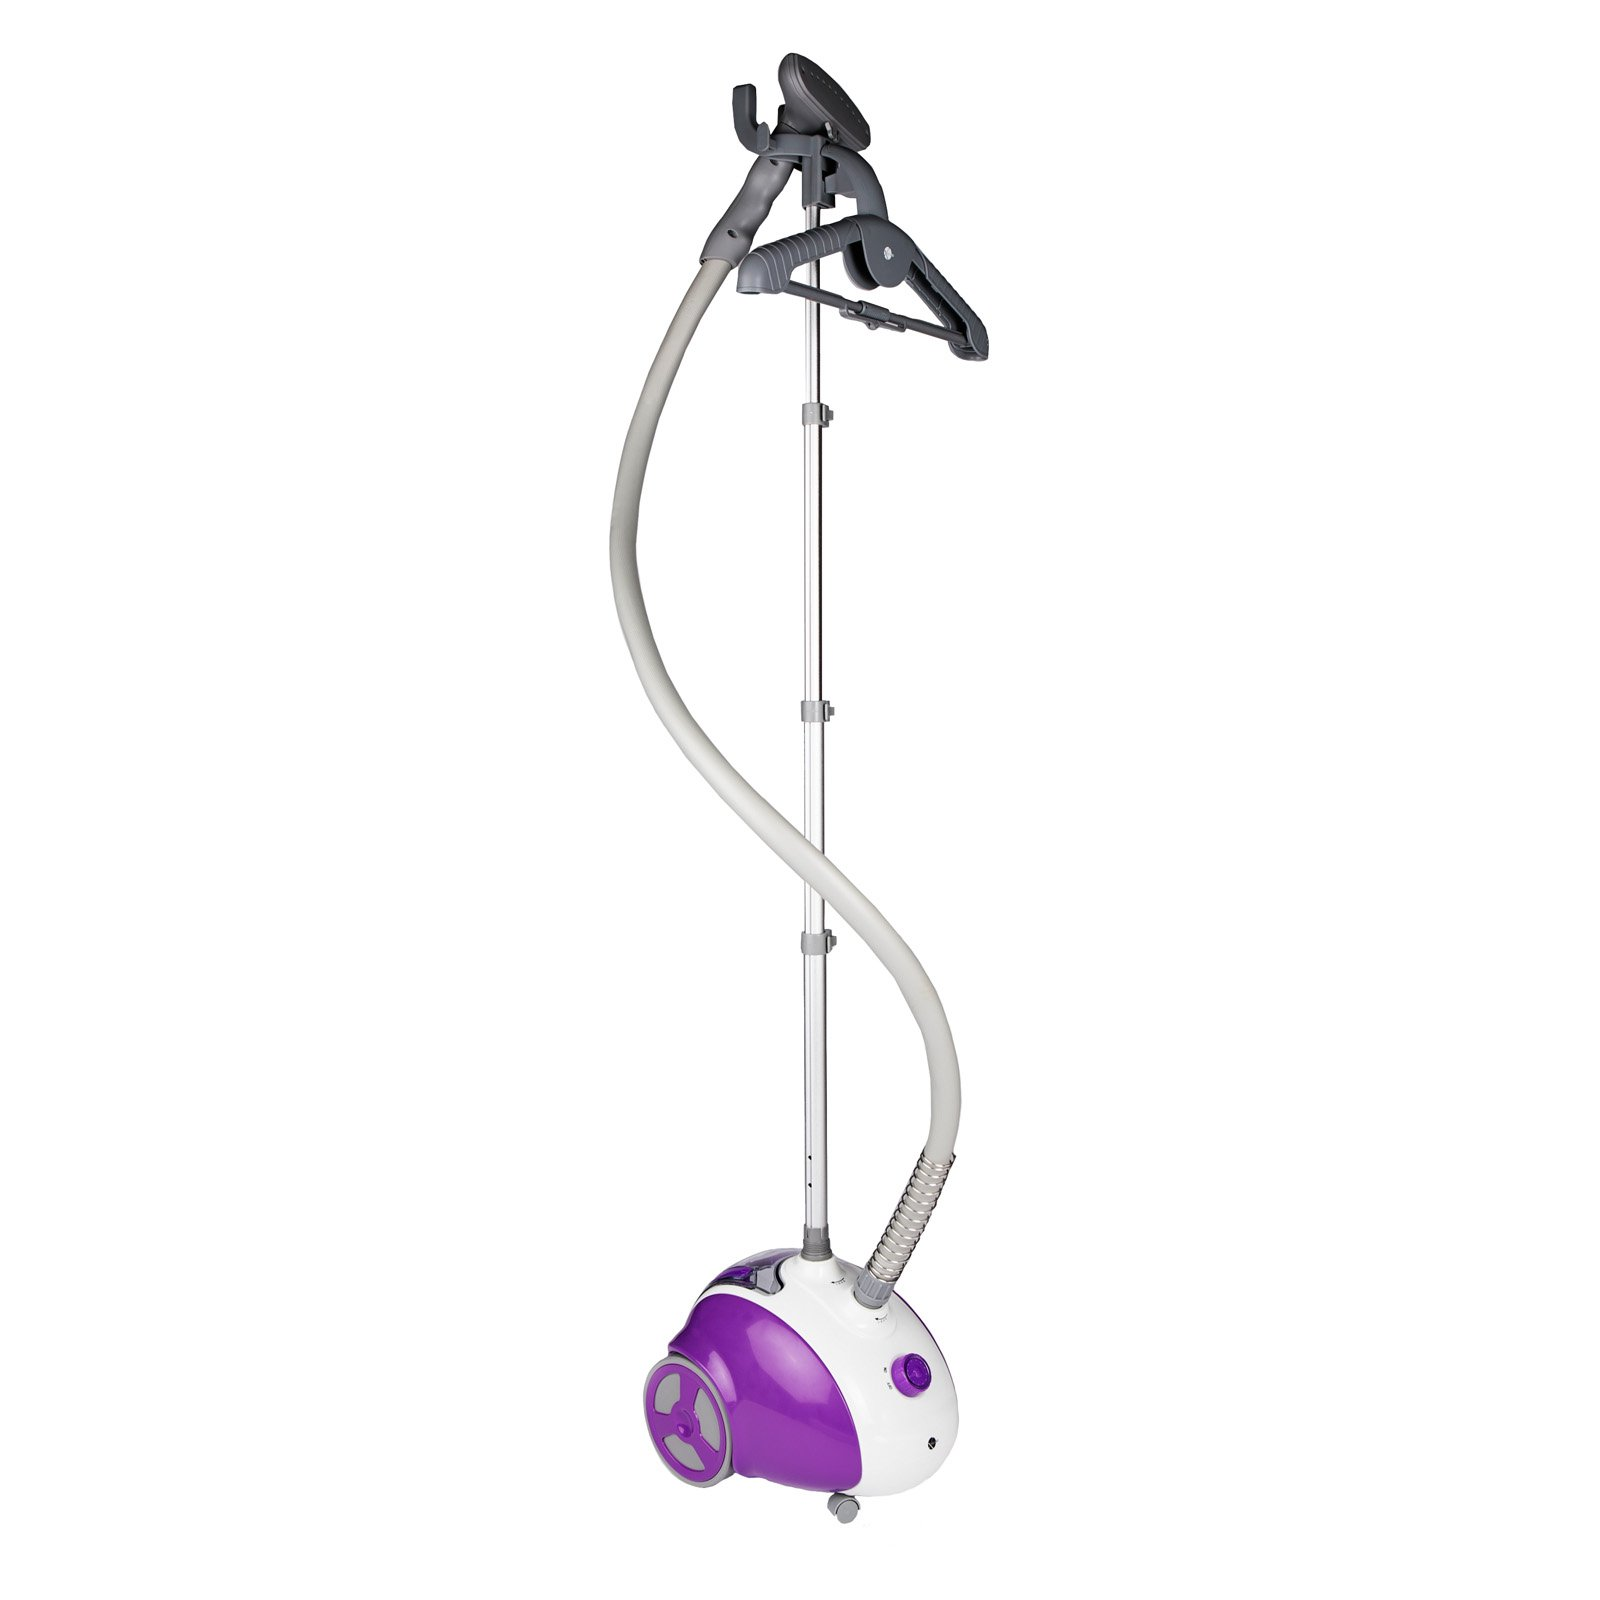 Steam and Go Classic performance home garment steamer- Accessories included! SAG – 38 Purple